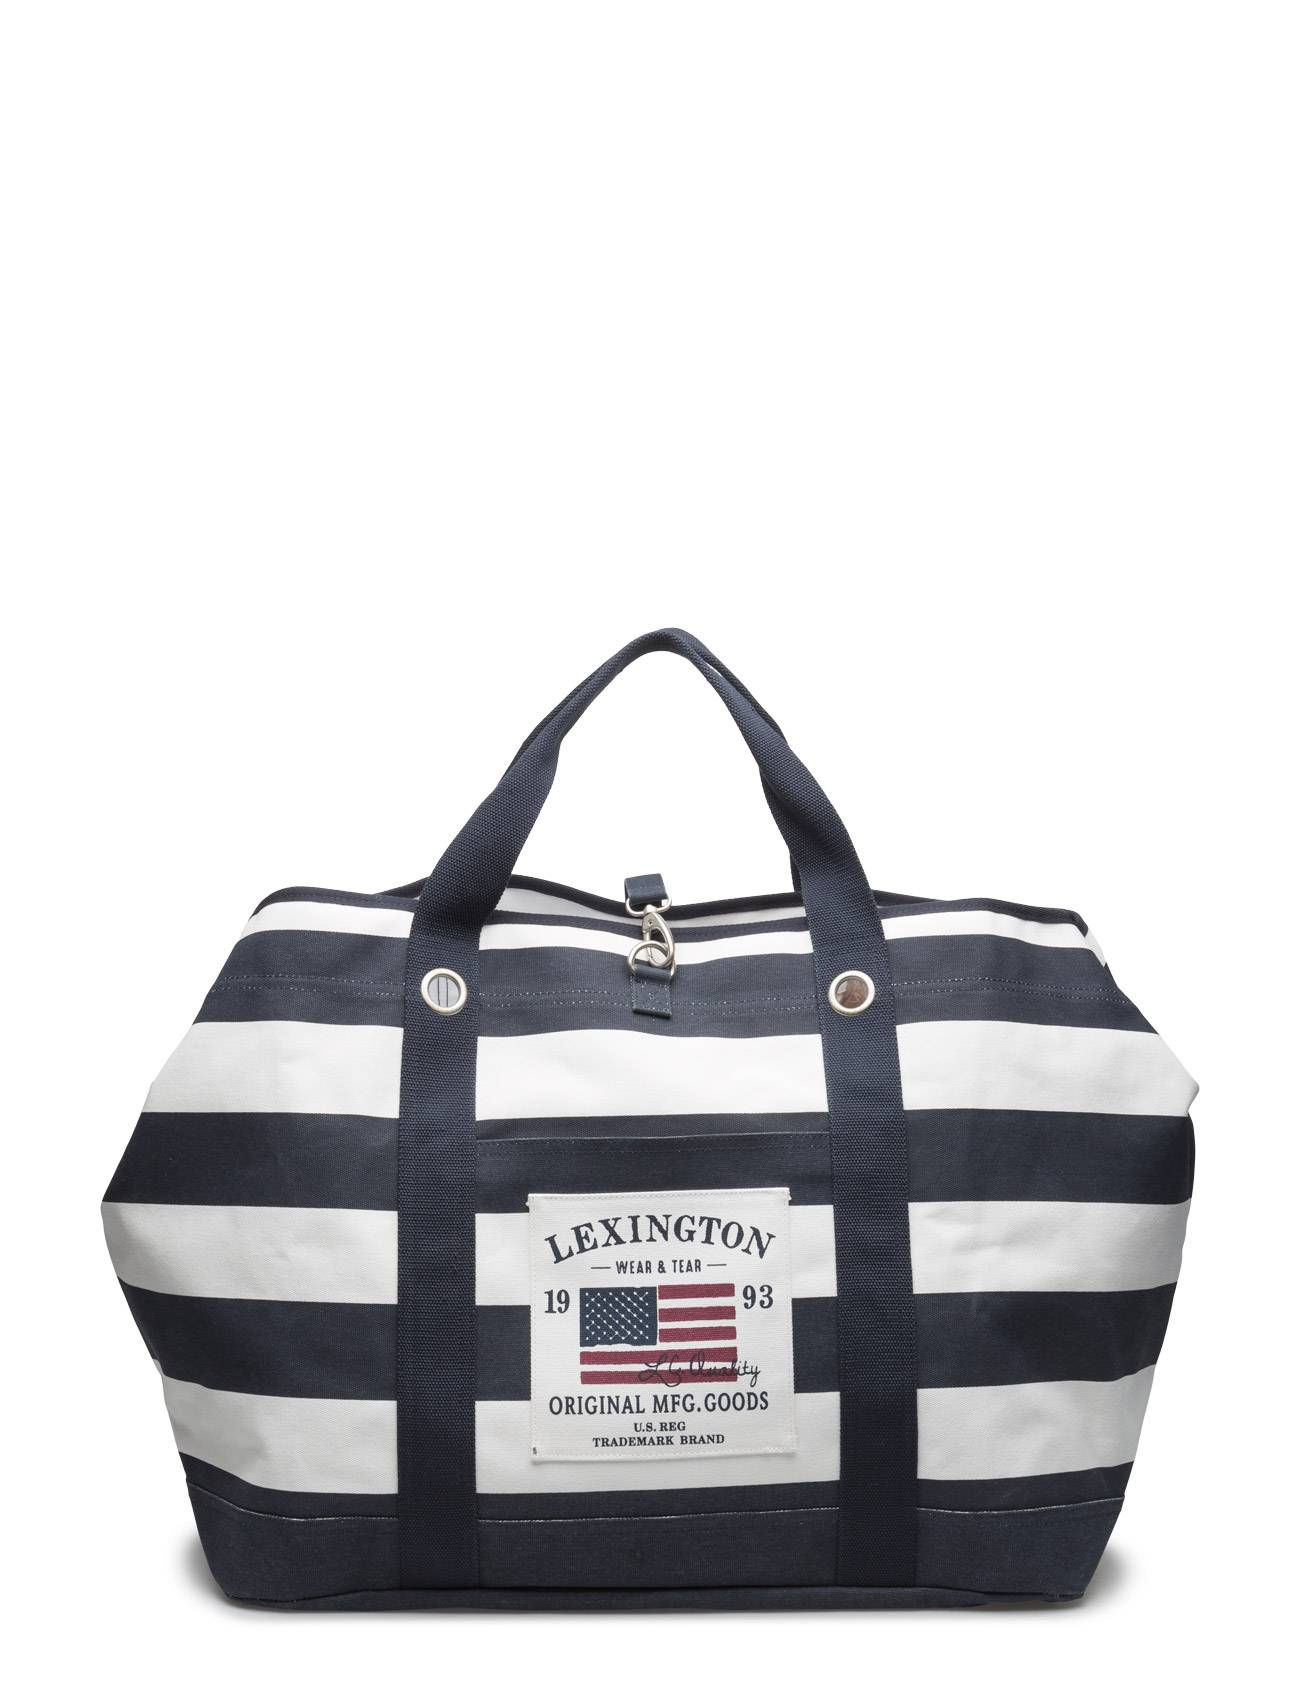 Lexington Company Miami Beach Bag